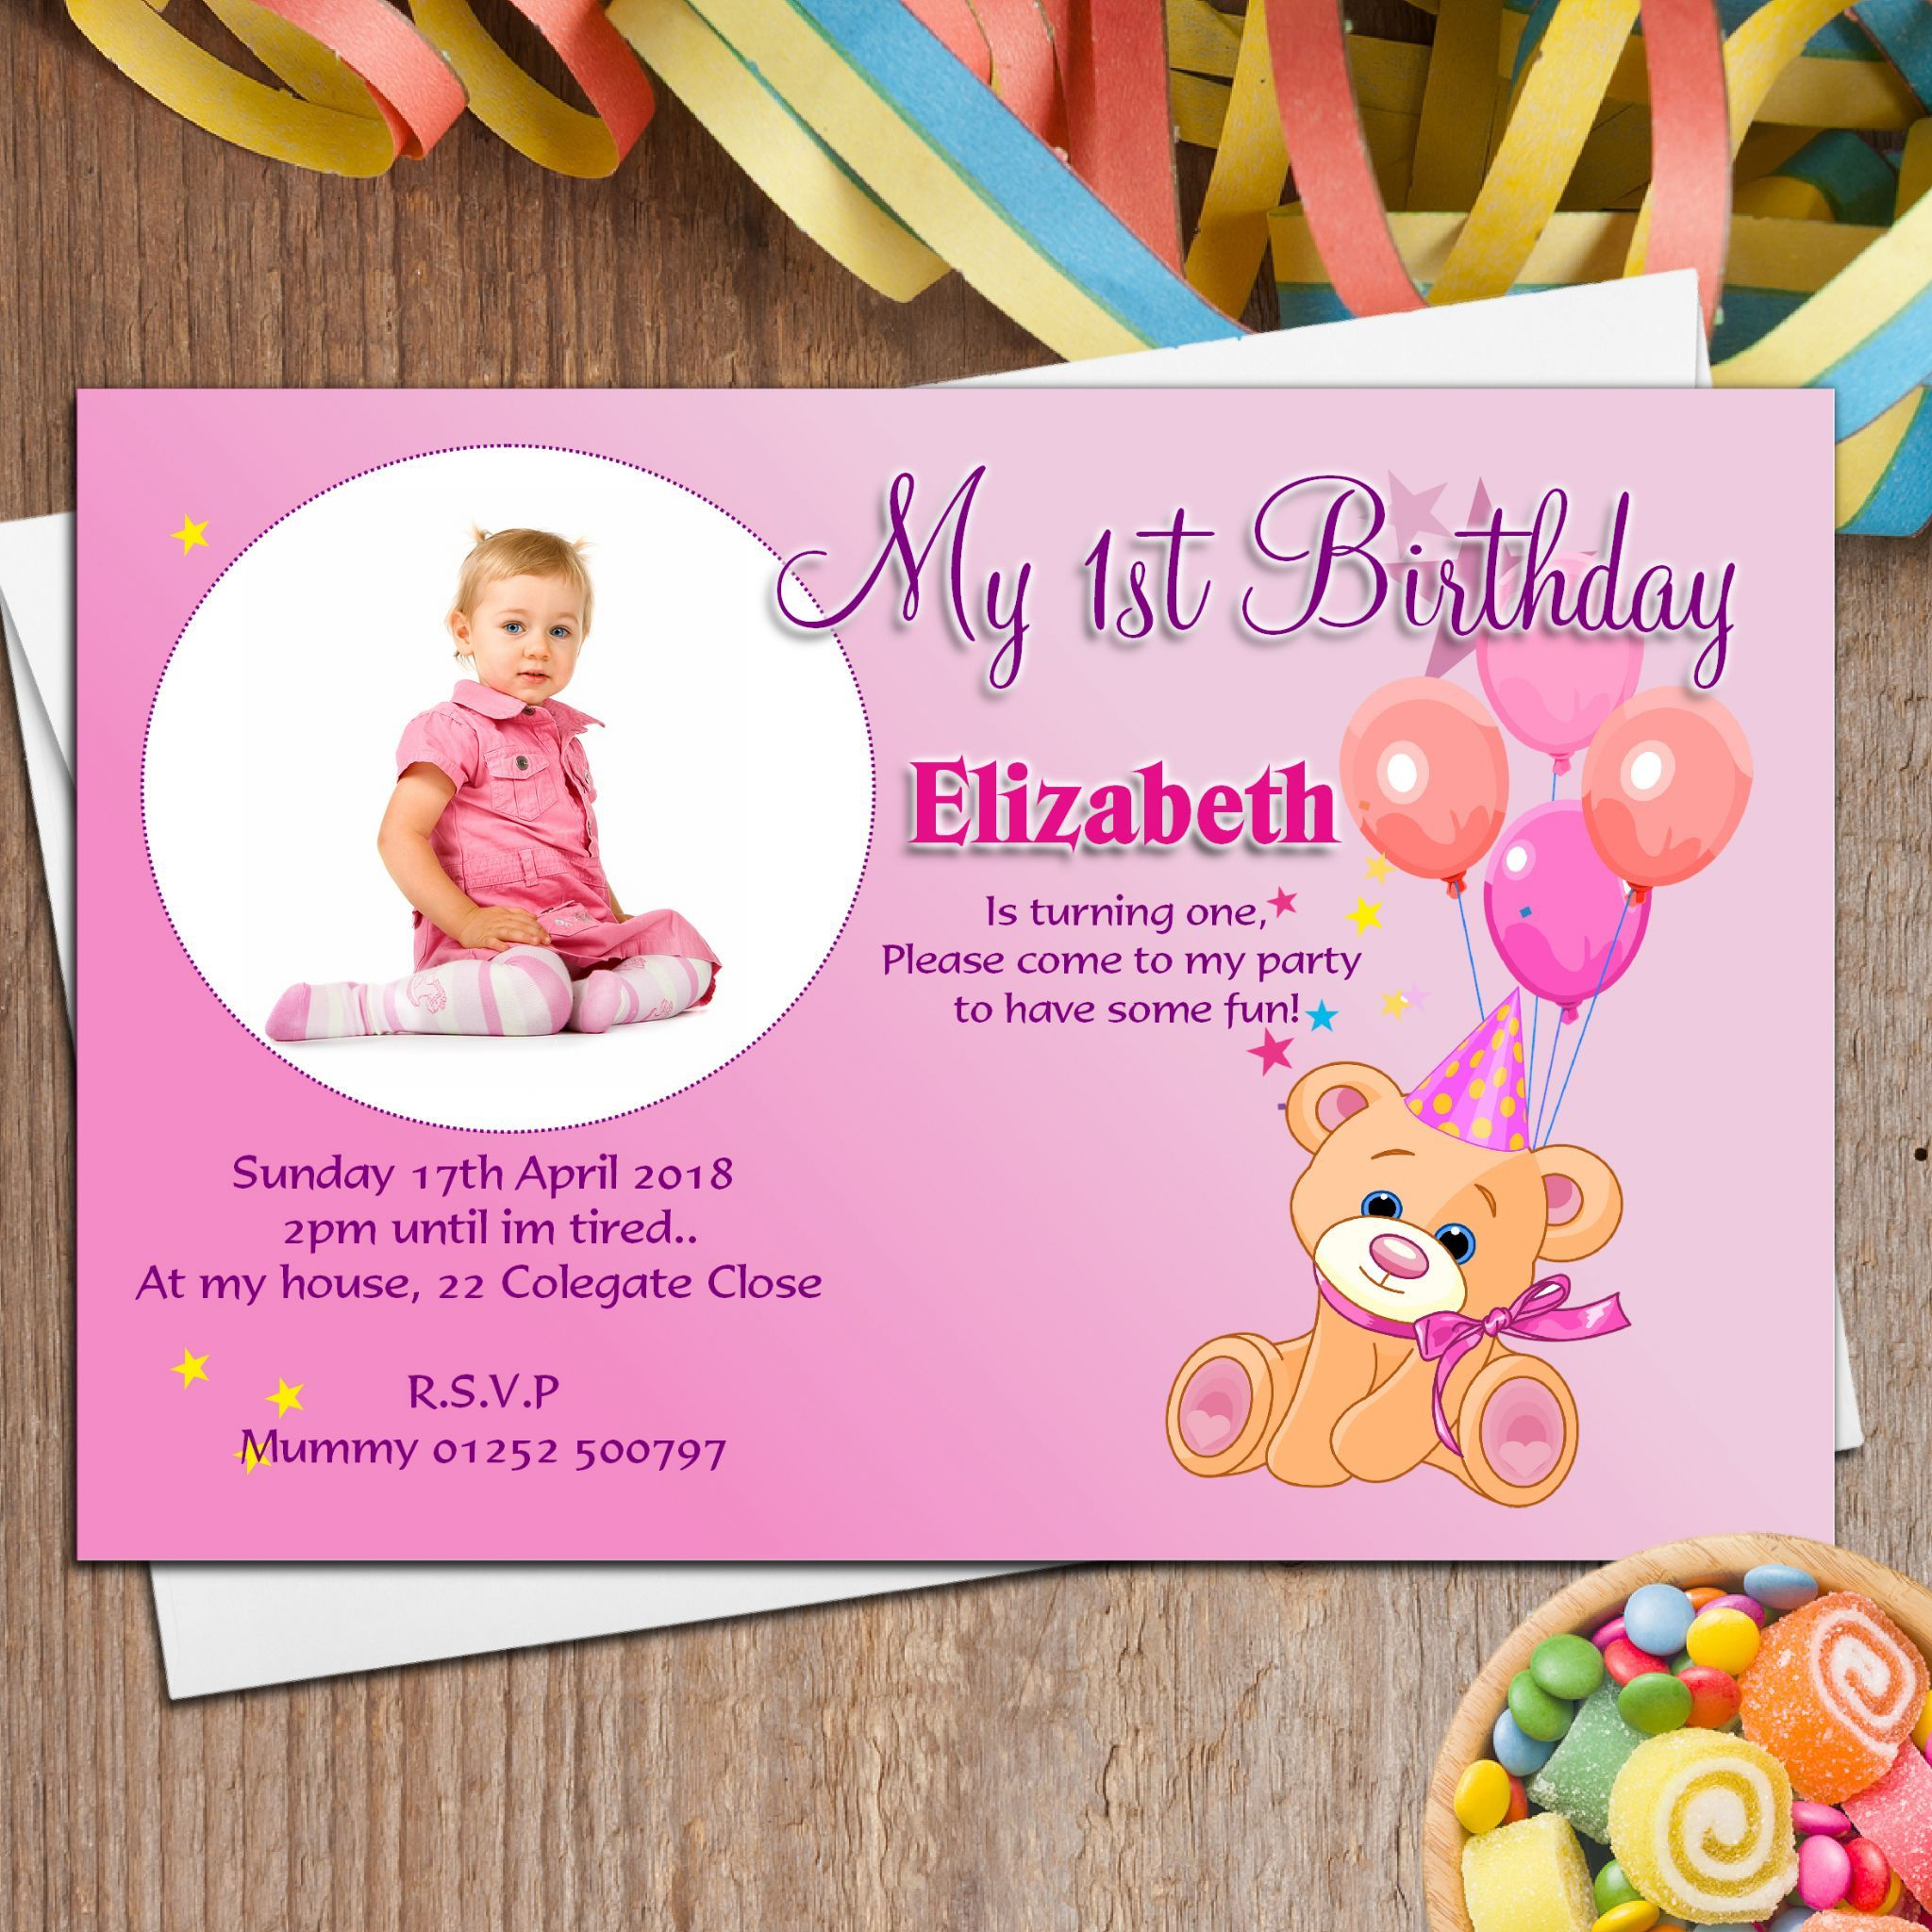 Baby Invitation Card Design